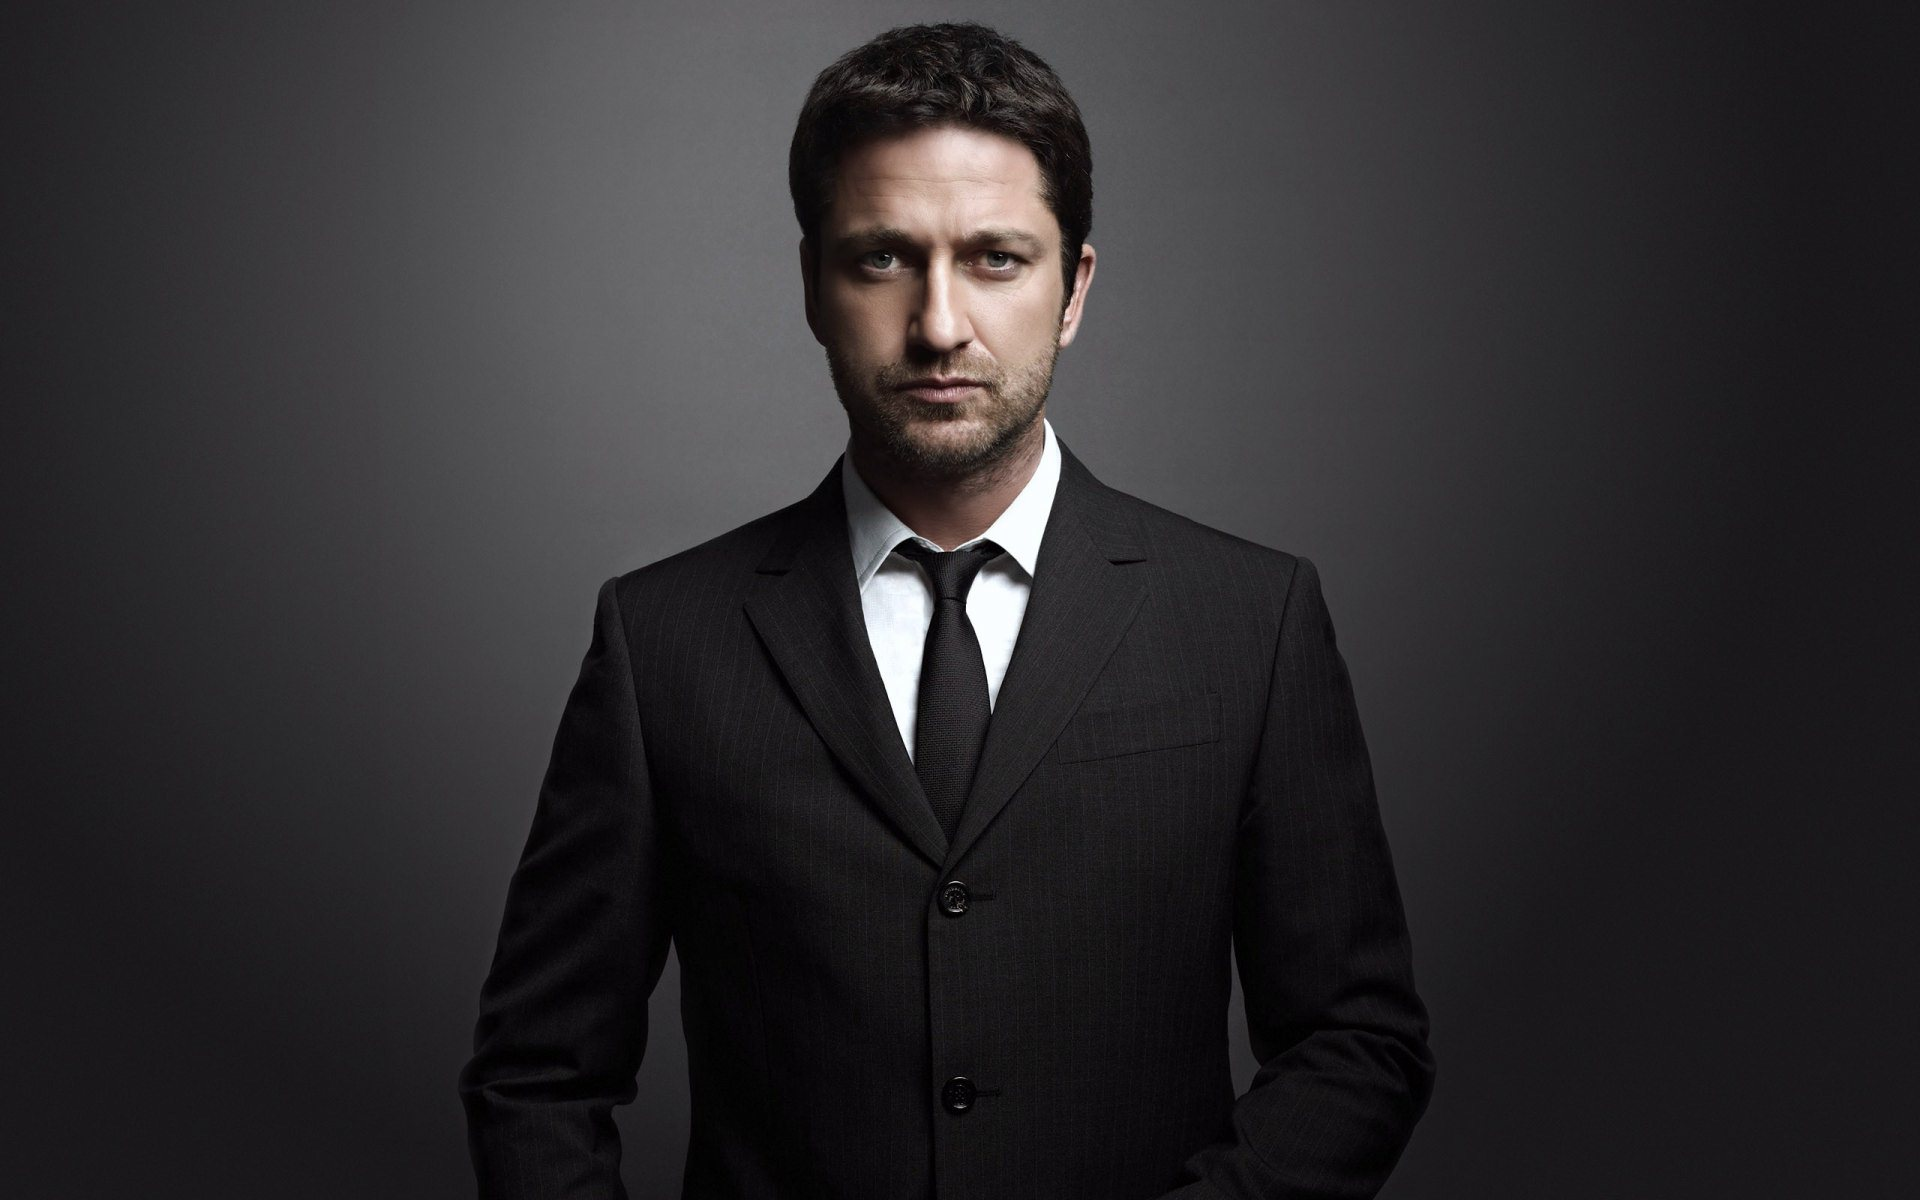 gerard butler wallpaper background